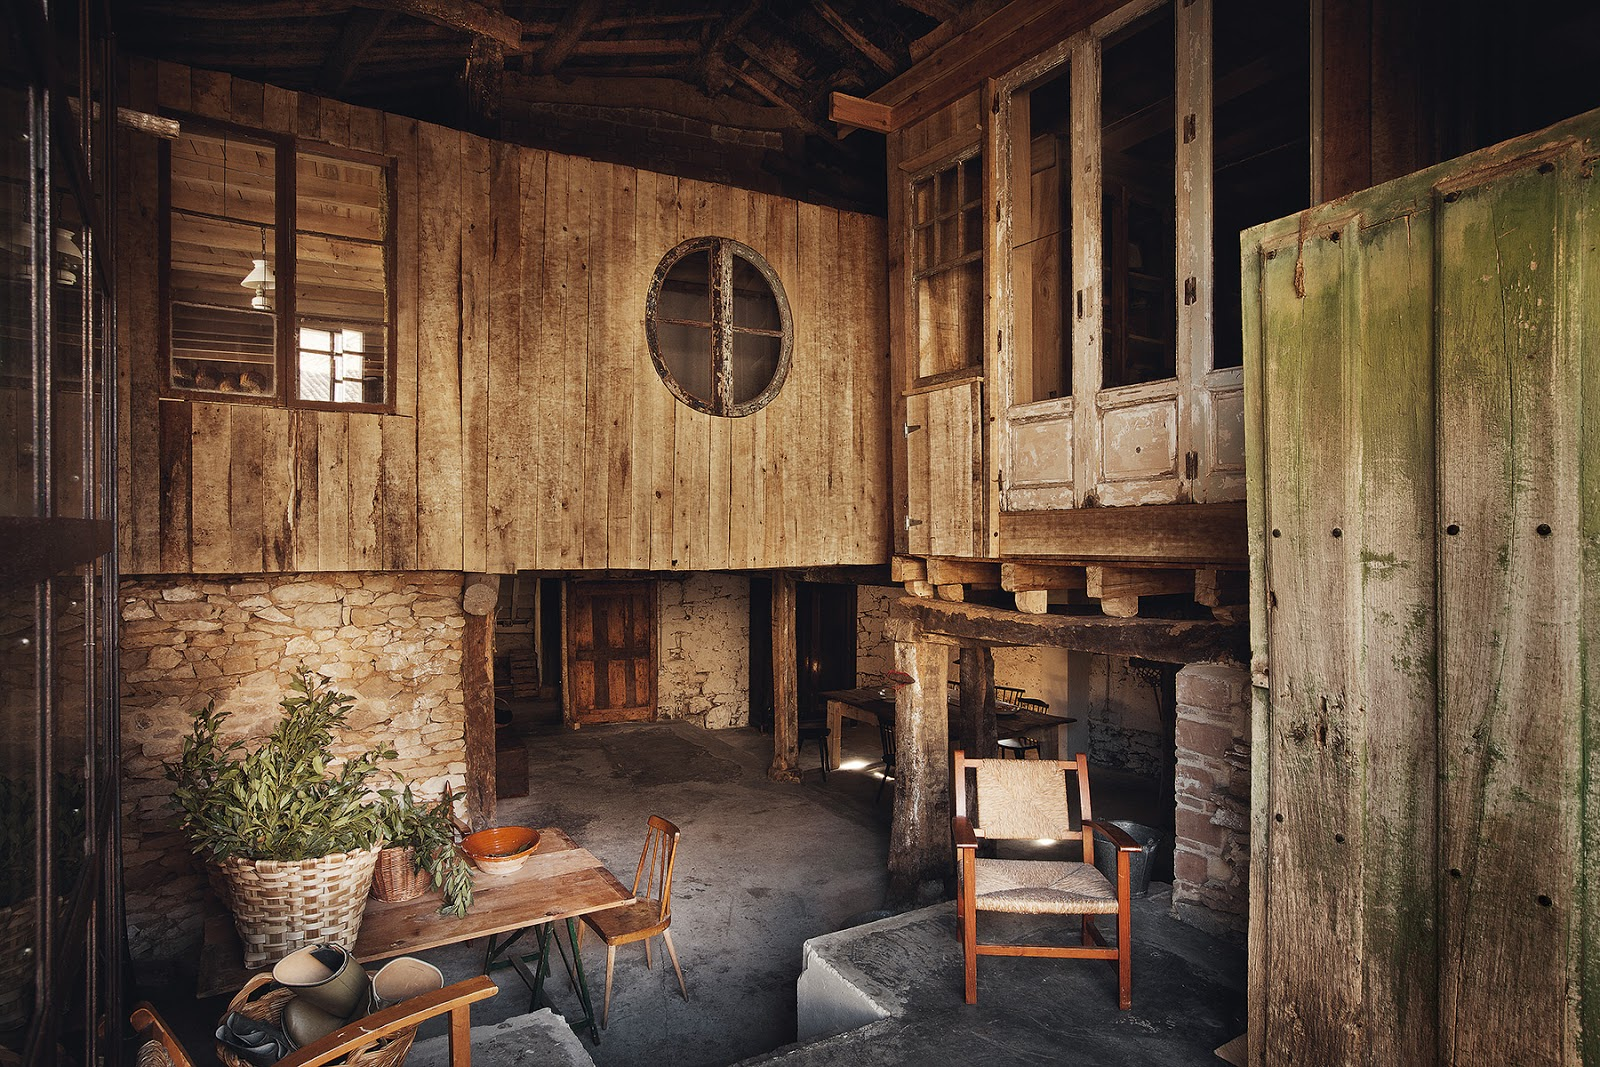 decordemon: Living in the past at an old Spanish farmhouse on dutch inspired interior designs, old farmhouse kitchen designs, country farmhouse interior designs, old farmhouse interior designs,